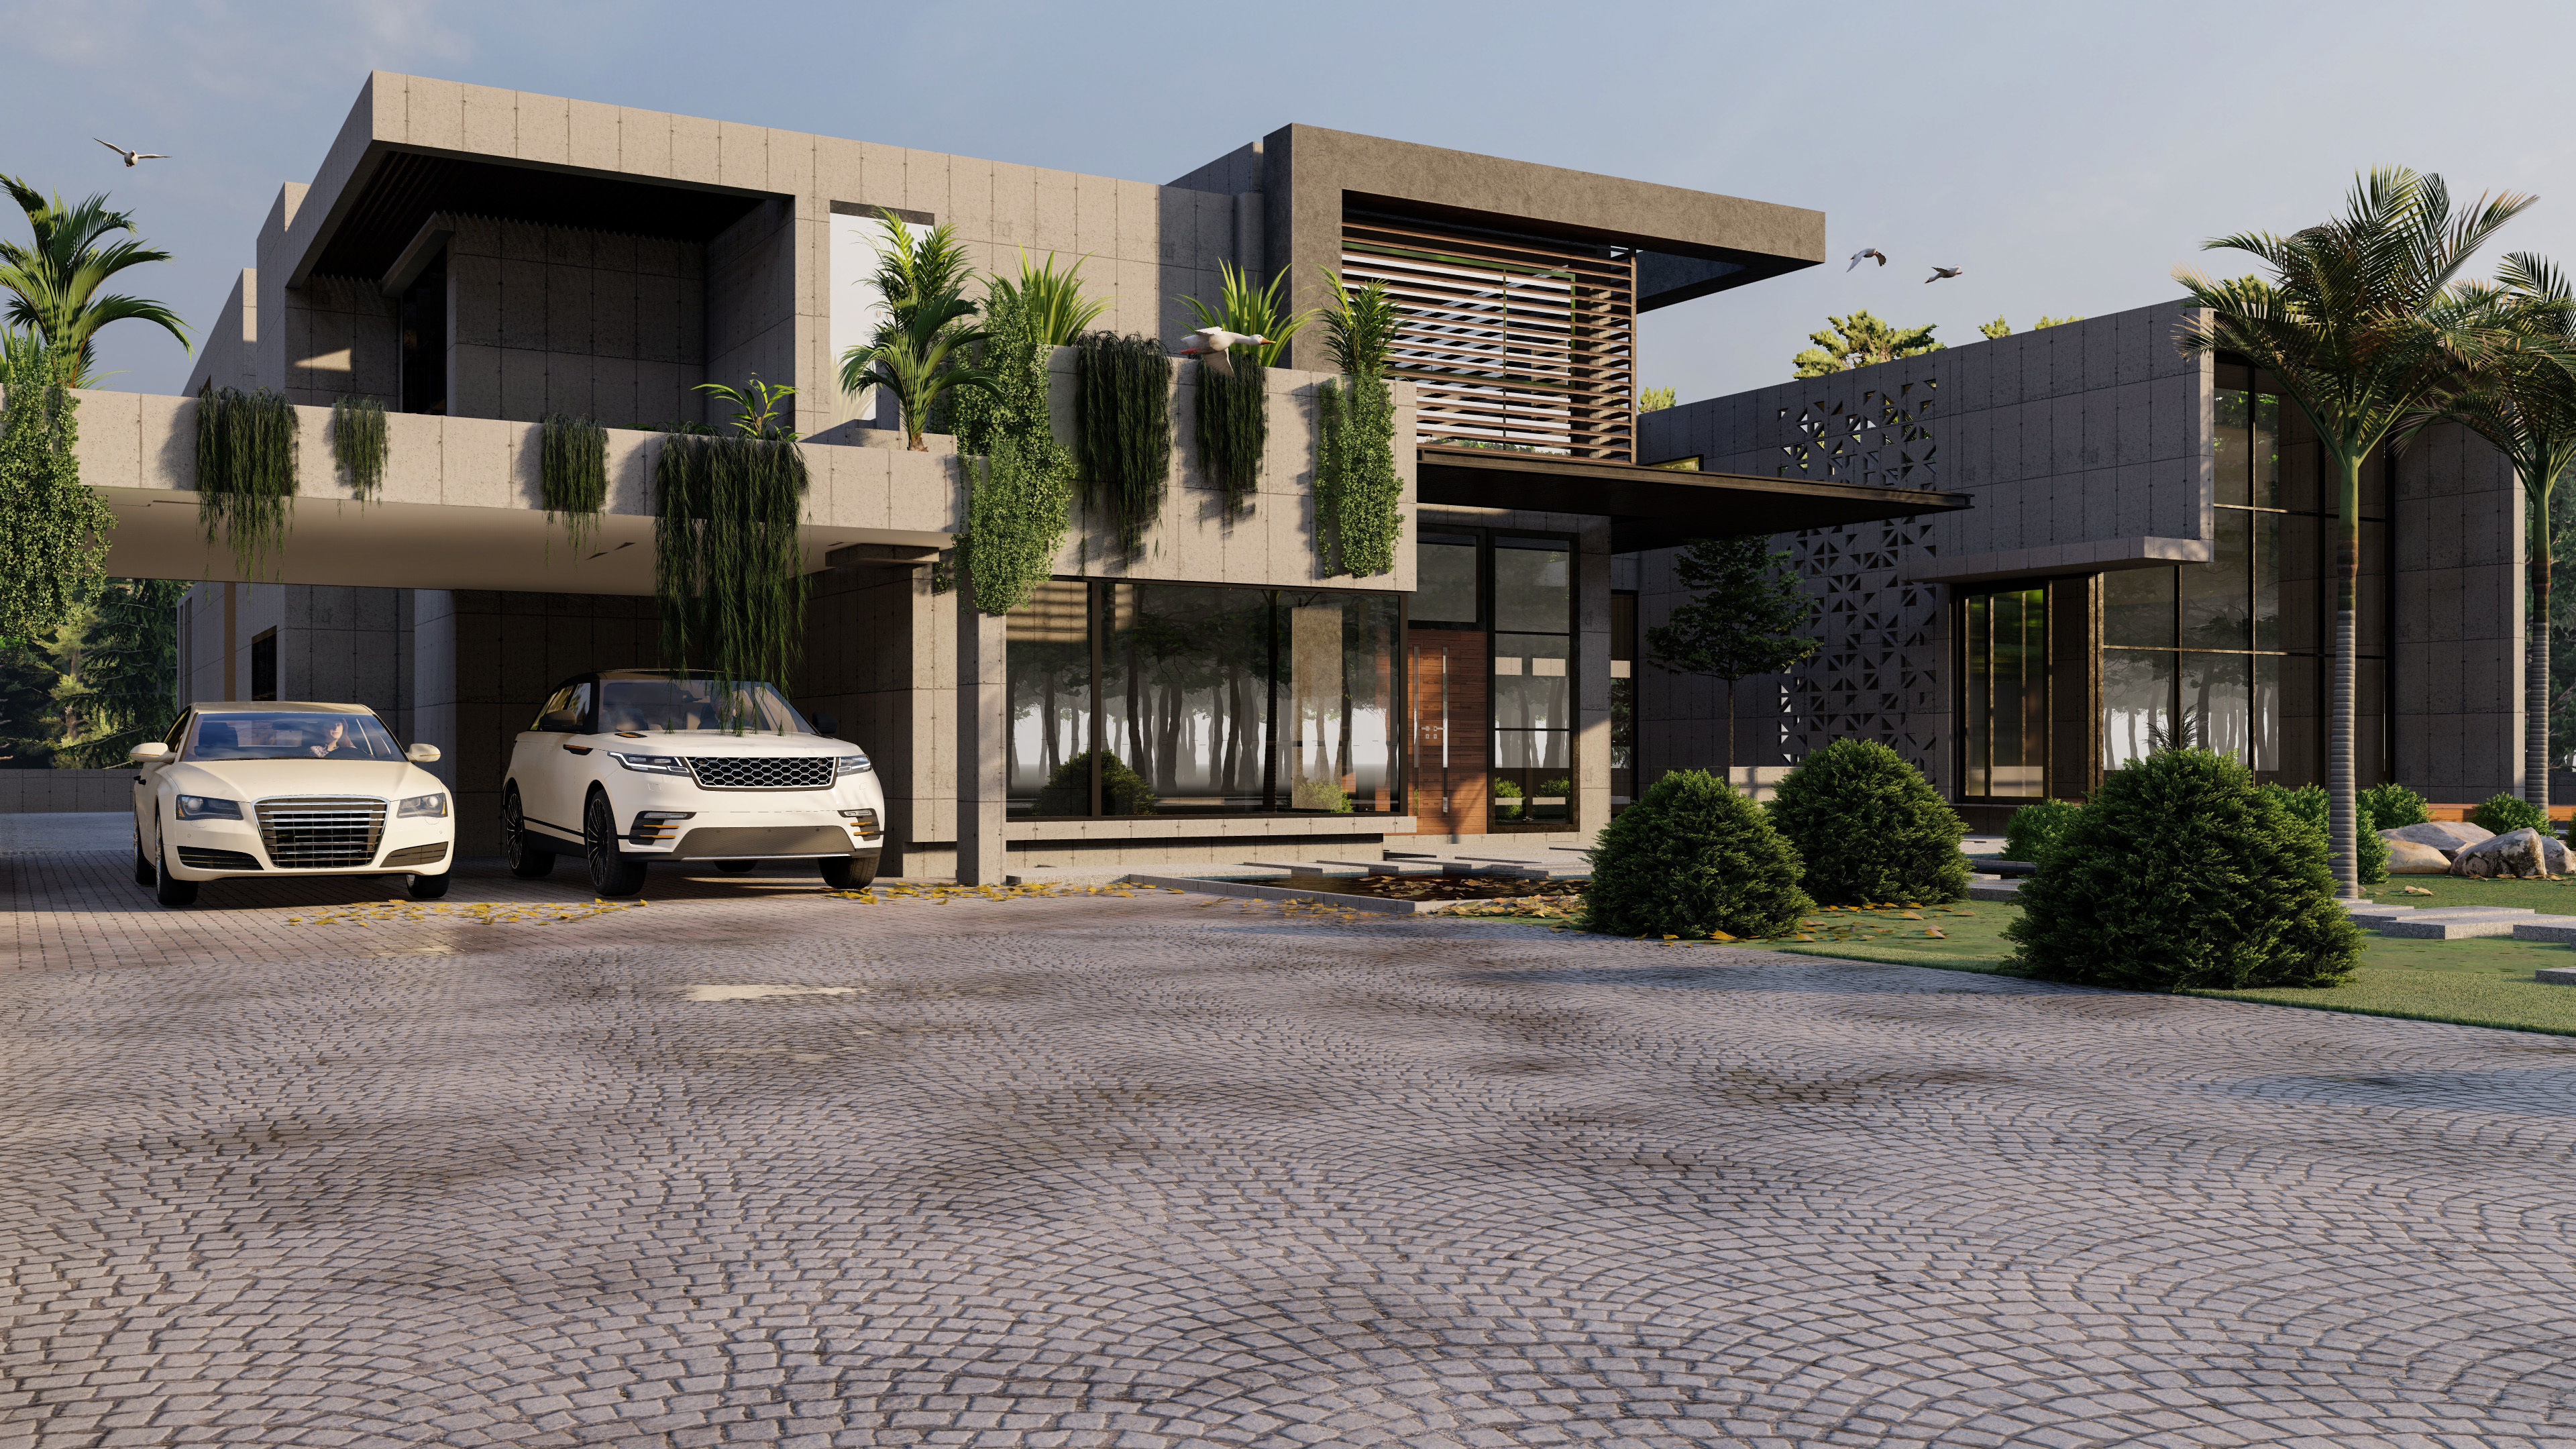 MODERN LUXURY HOUSE MODEL AND RENDER MODERN HOUSE 3D